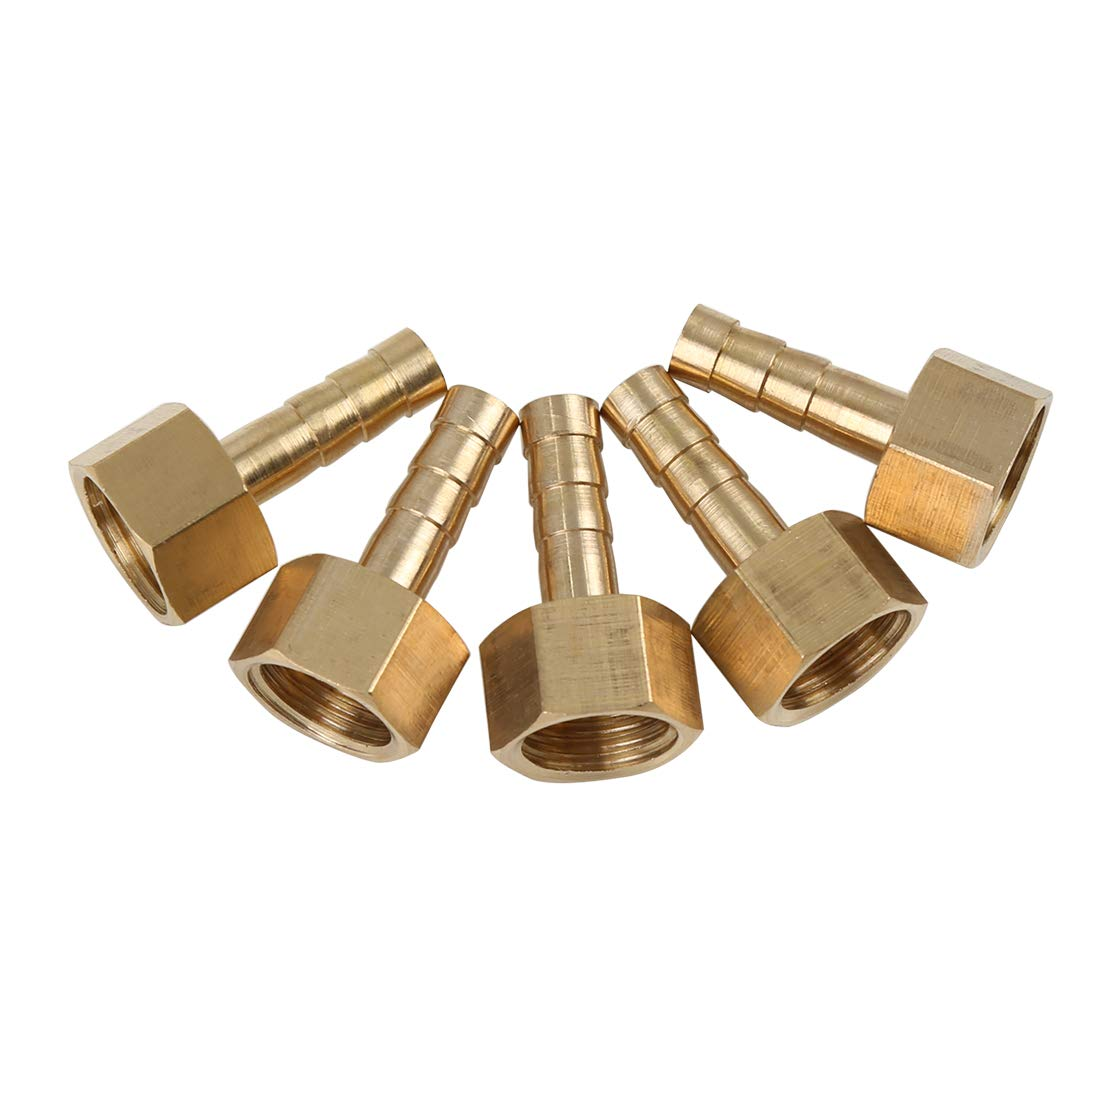 X AUTOHAUX 6mm Brass Hose Barb Fitting Connector for Joiner Air Water Fuel Pipe